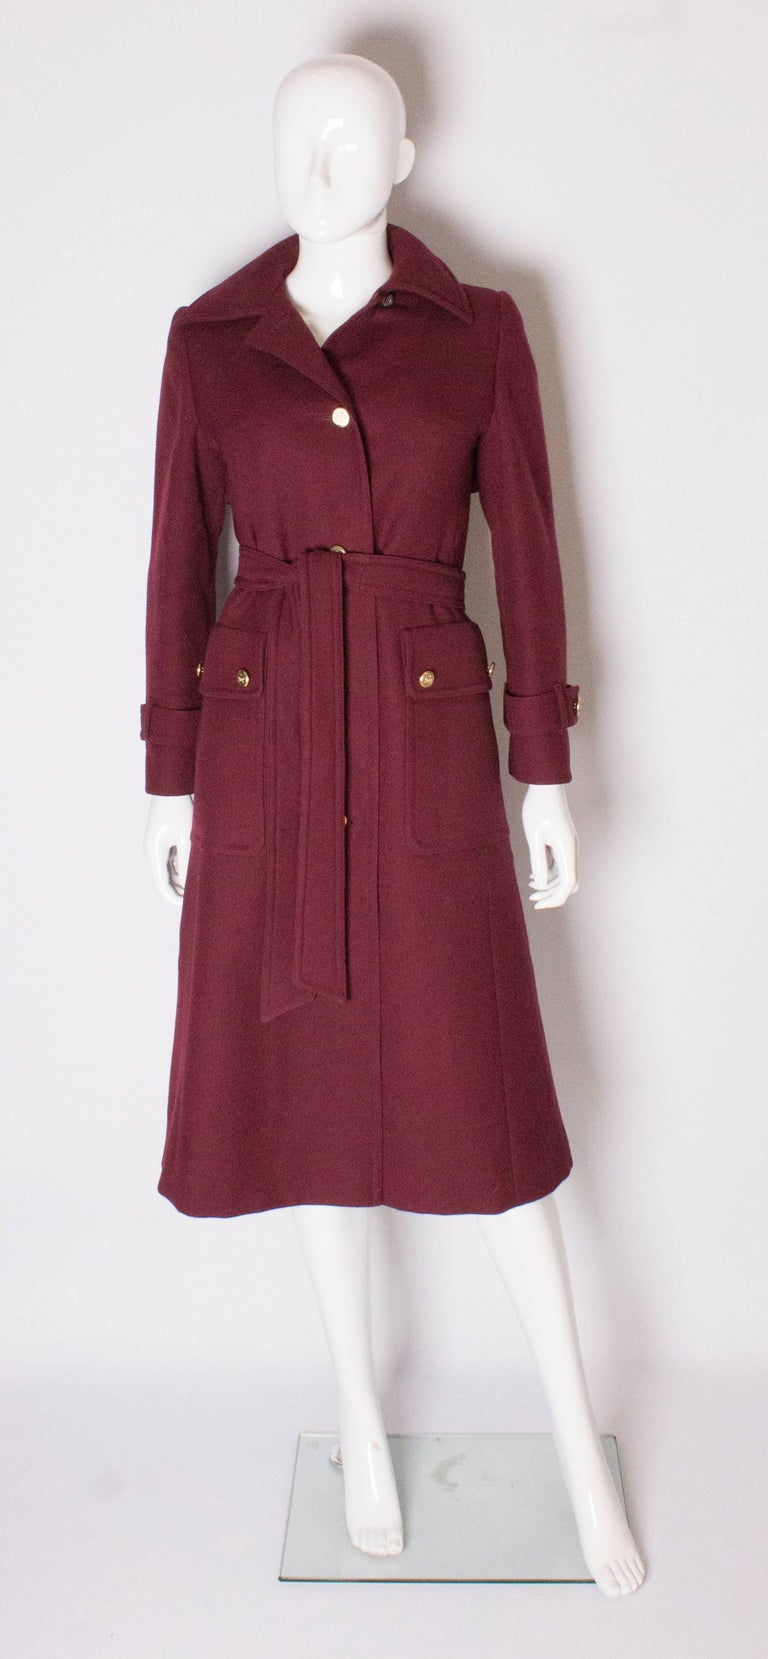 A great coat for Autumn /Winter by Aquascutum for Harrods. In a burgundy colour wool, the coat has a 4 button opening , two large pockets on the front and a self tie belt. It is fully lined.